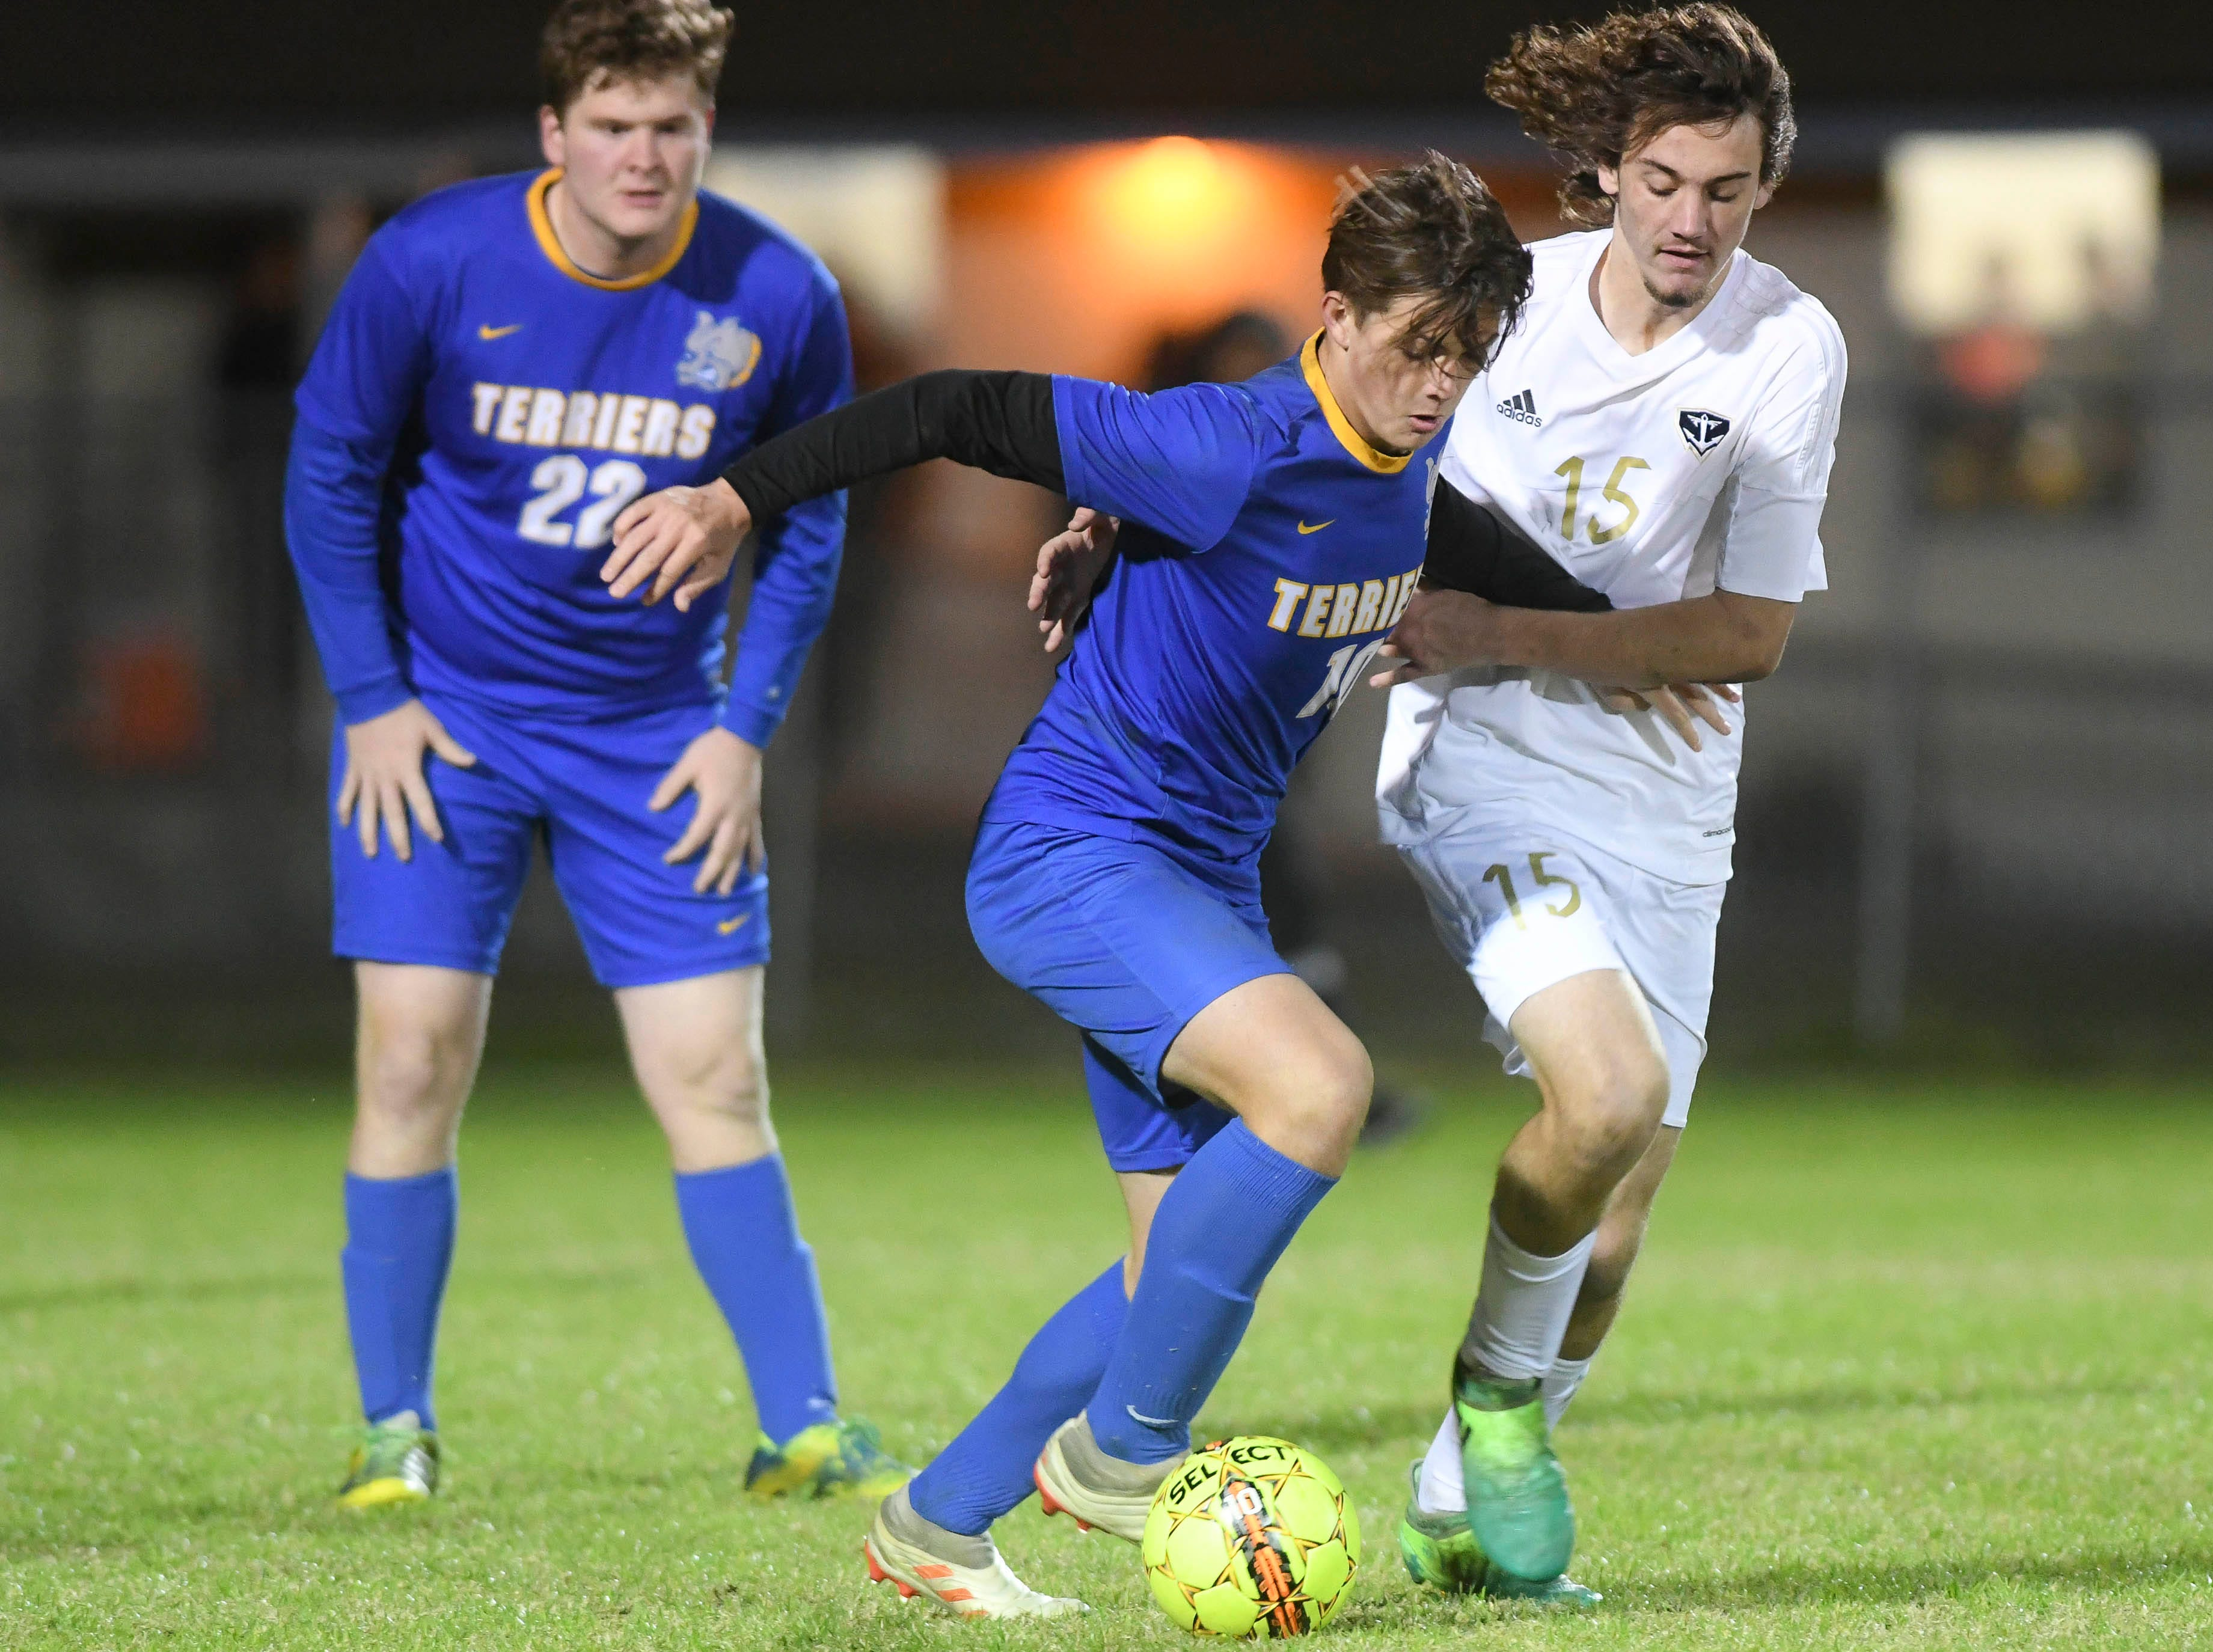 Nathan Pless of Titusville is harassed by Caleb Webb of Eau Gallie during Wednesday's District 12, Class 3A semifinal at McLarty Stadium